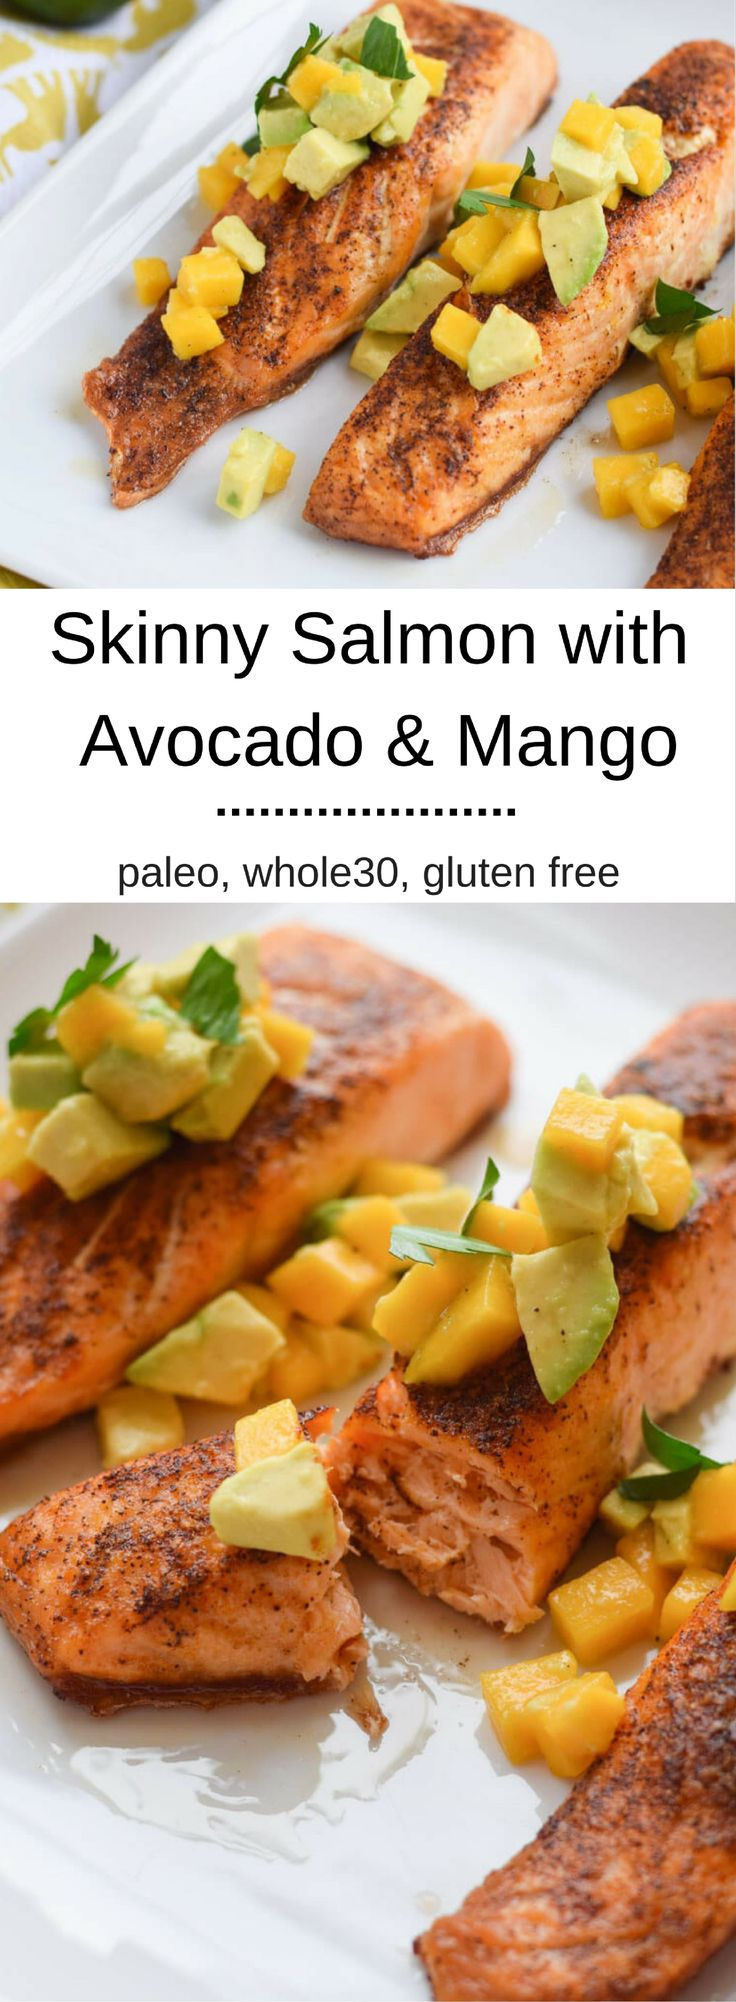 Skinny Salmon with Avocado and Mango - try this for a quick and easy dinner that you can feel good about eating.  {gluten free, paleo, whole30}